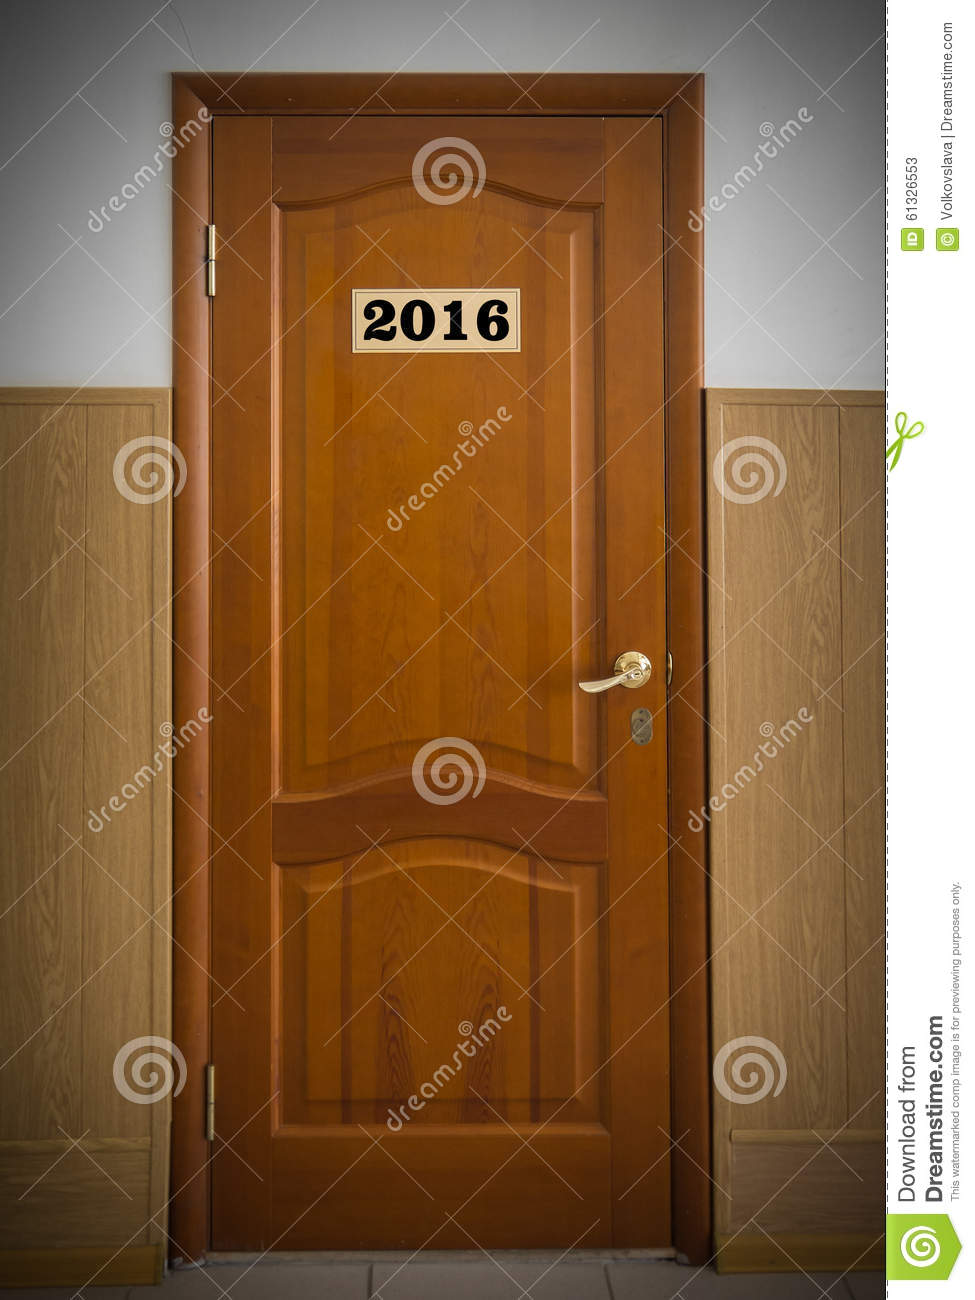 Le Meilleur Closed Wooden Office Door With Number 2016 Stock Image Ce Mois Ci